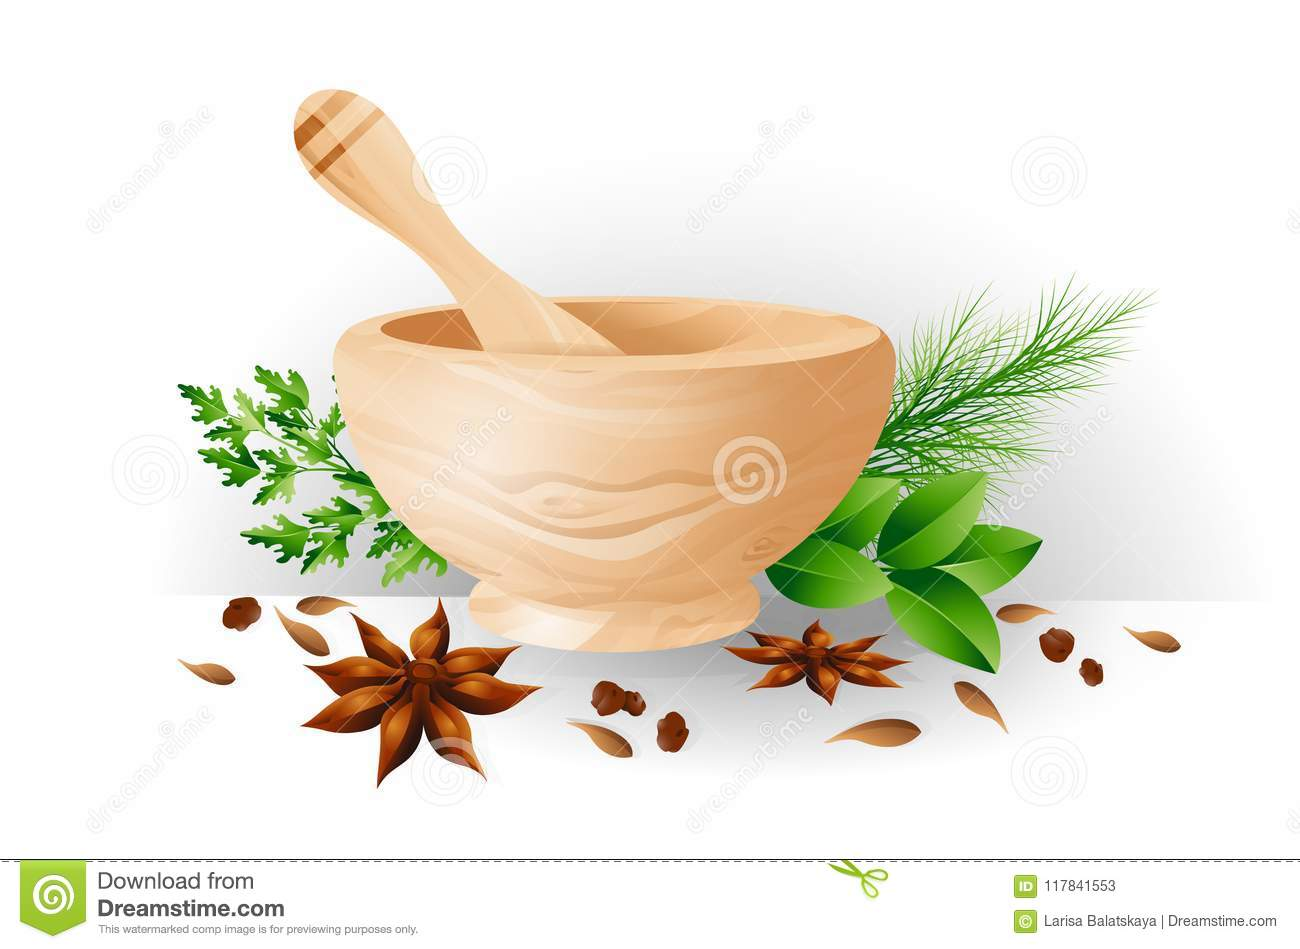 Mortar and pestle, herbs and spices